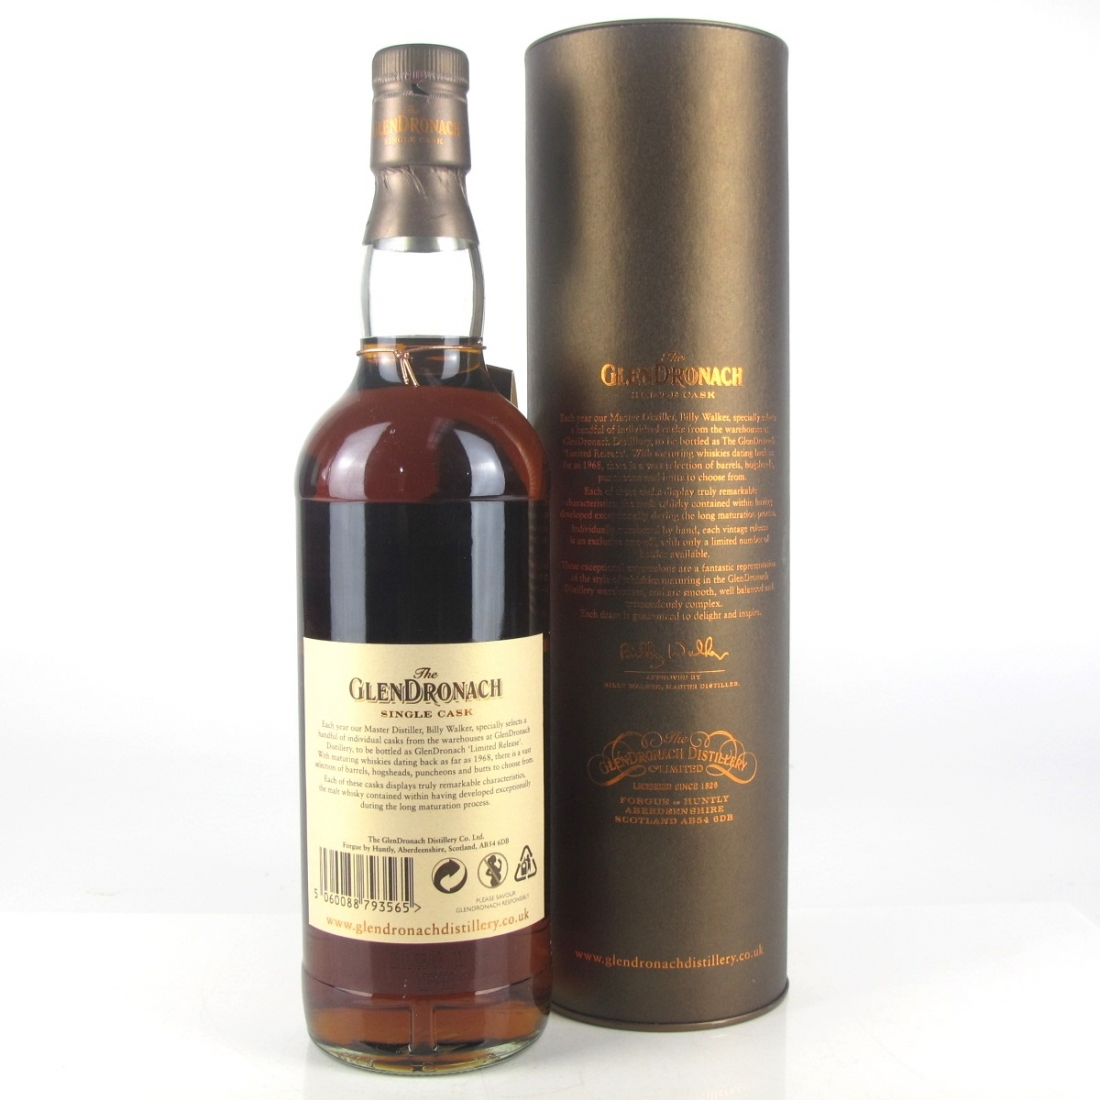 Glendronach 1995 Single Cask 16 Year Old #3251